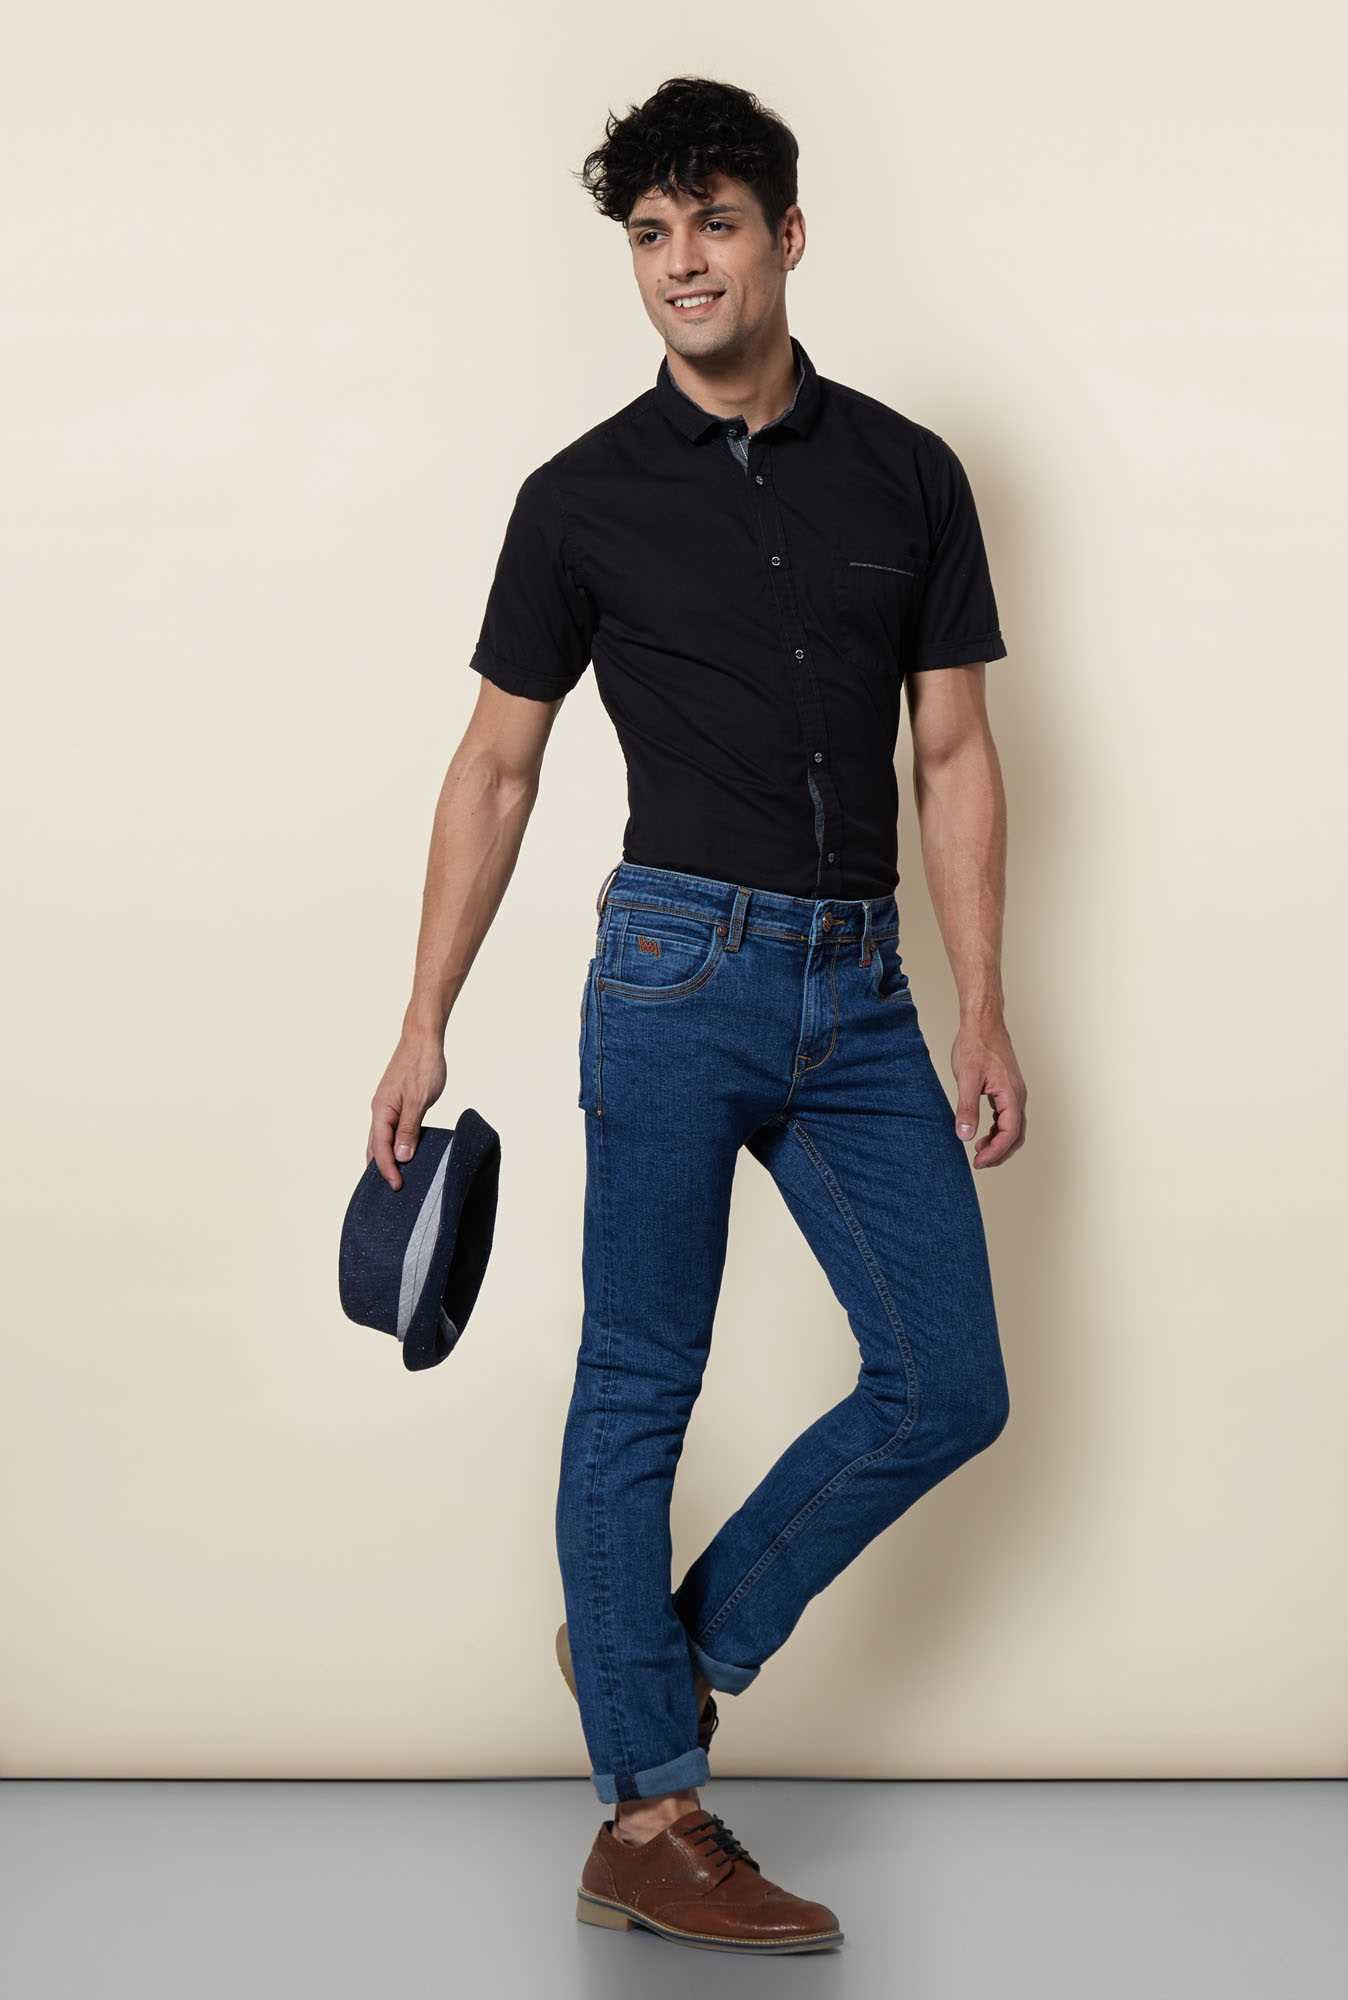 Lawman Black Short Sleeve Casual Shirt